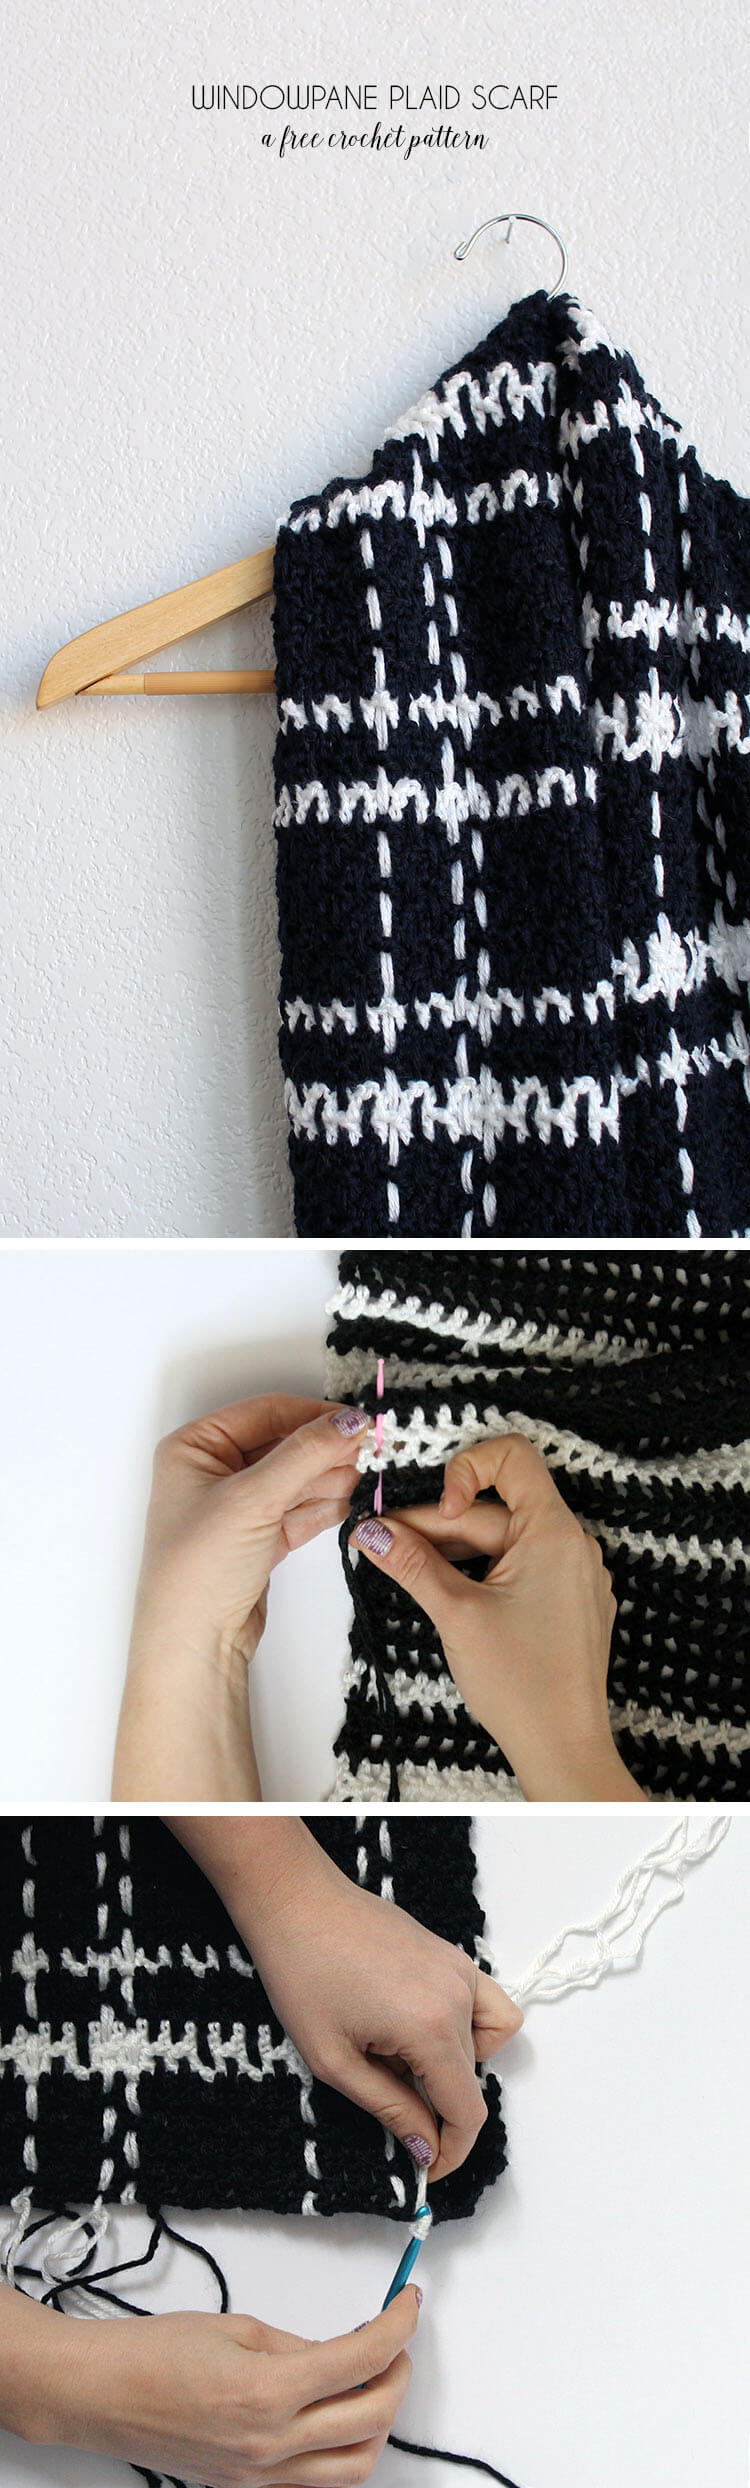 black and white windowpane plaid crochet scarf - this is easier than it looks! - free pattern and photo tutorial